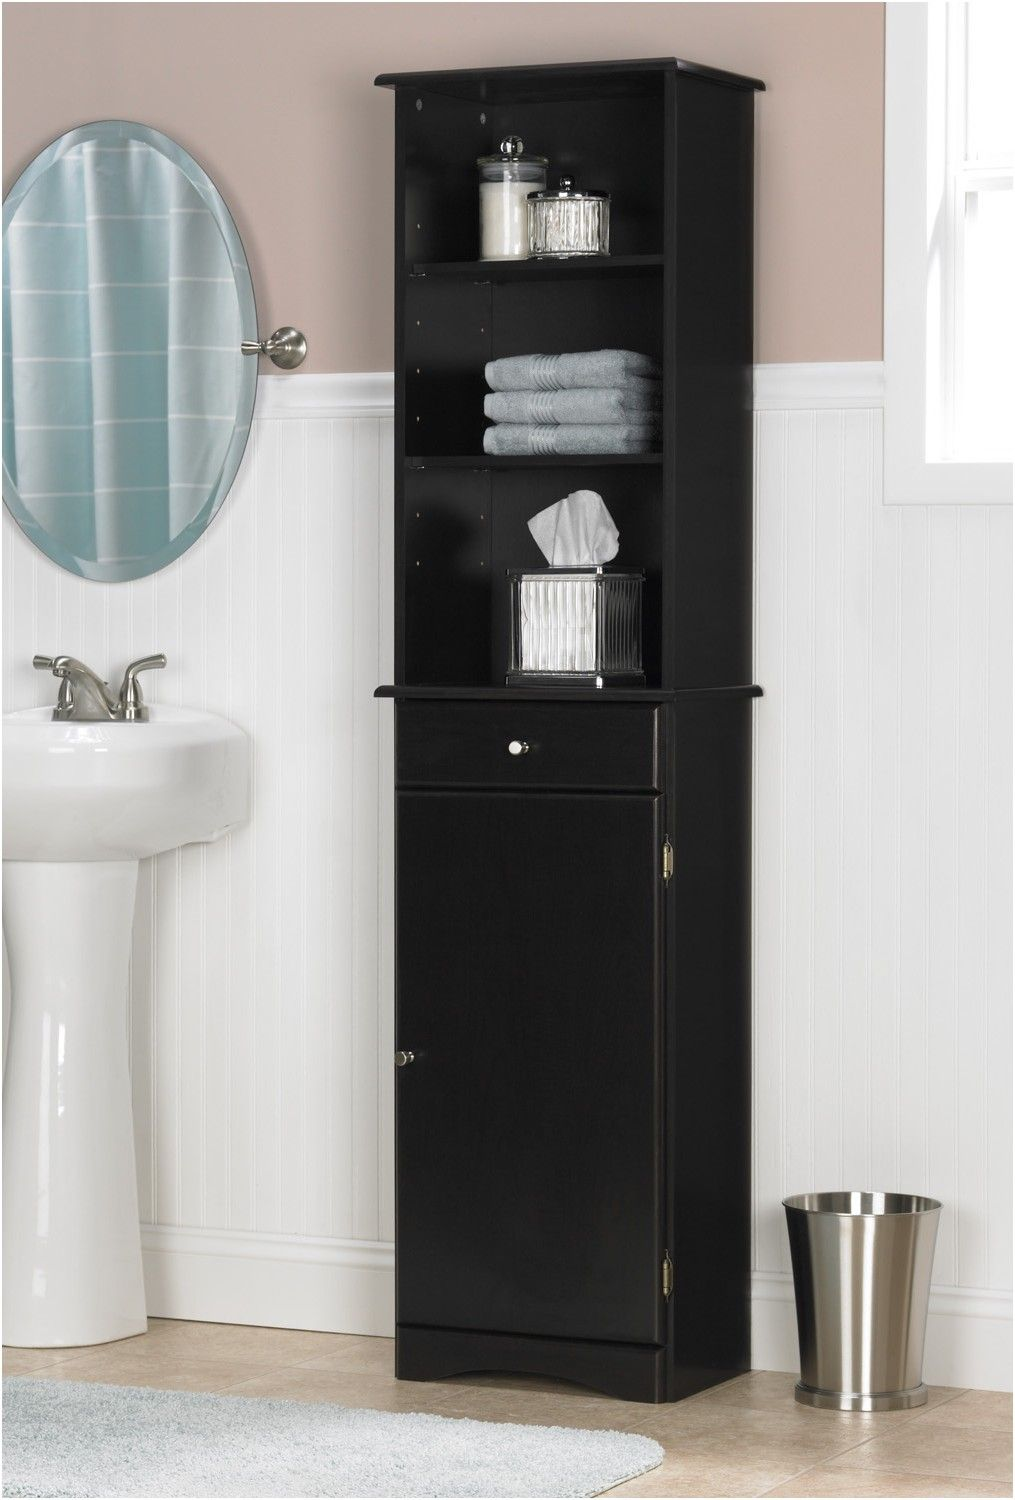 Tall Freestanding Narrow Cabinet Google Search Tall Bathroom Storage Tall Cabinet Storage Tall Bathroom Storage Cabinet